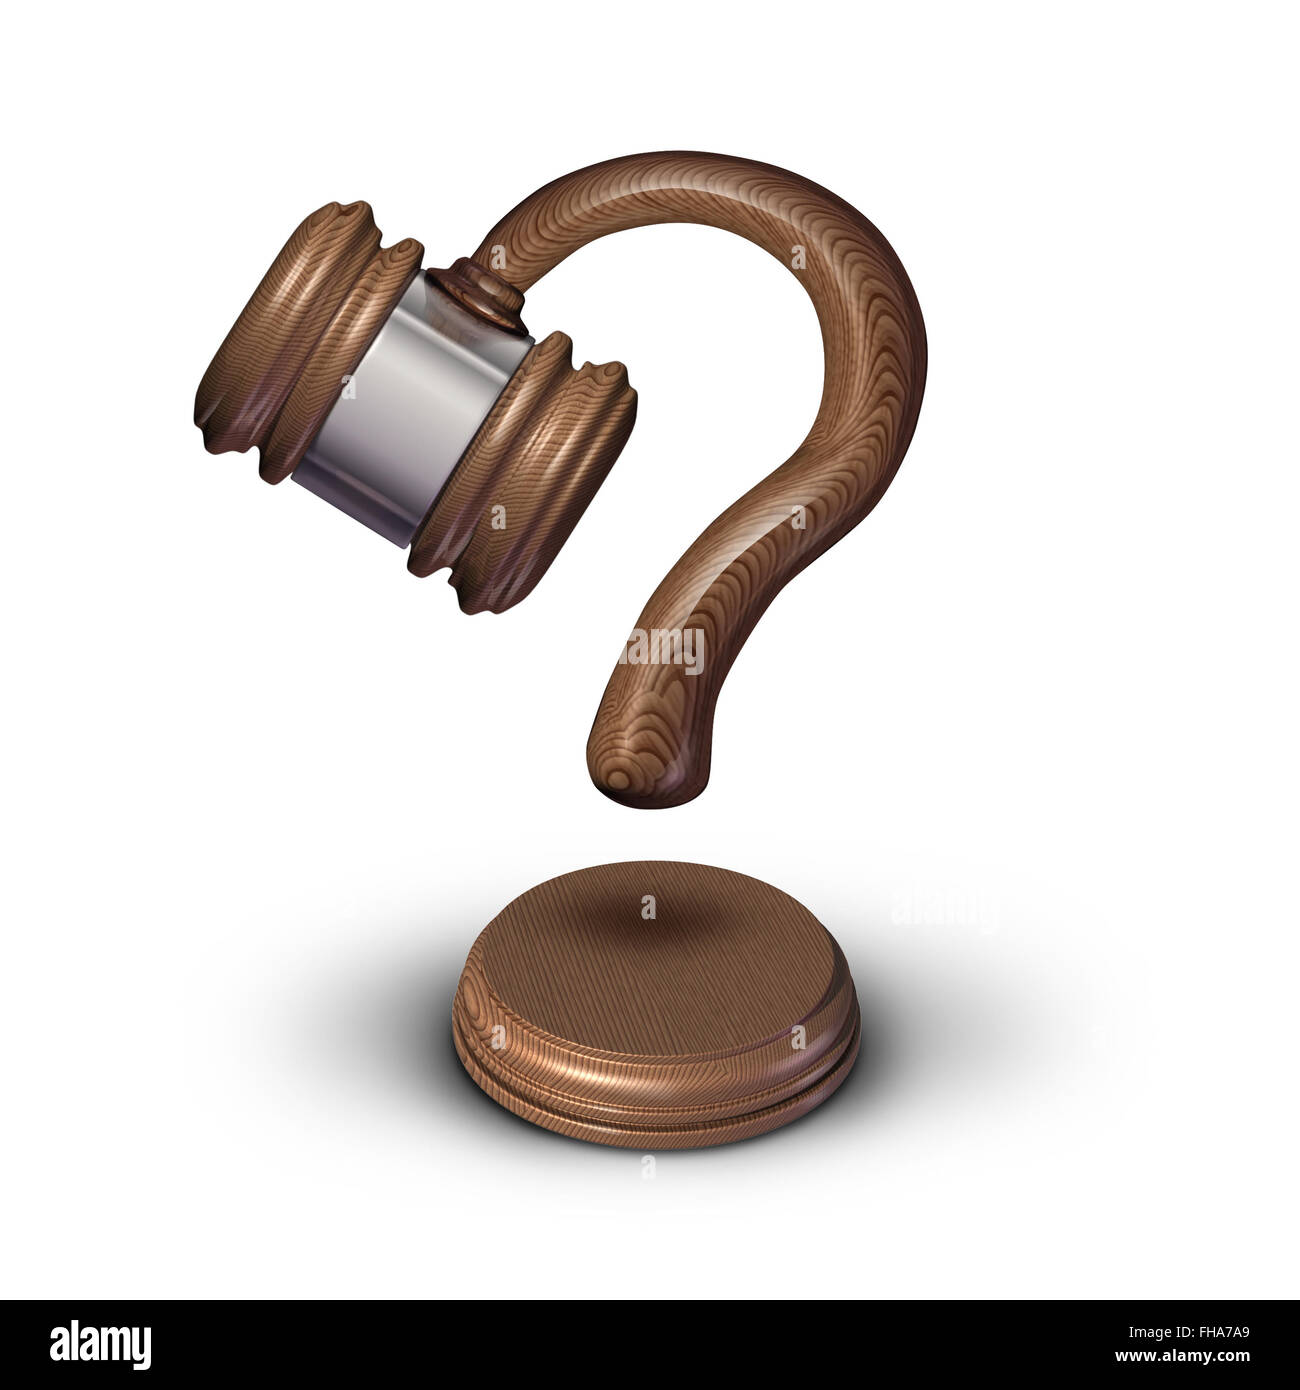 Legal questions concept and court questions symbol and law advice icon as a judge gavel or mallet with a sound block - Stock Image